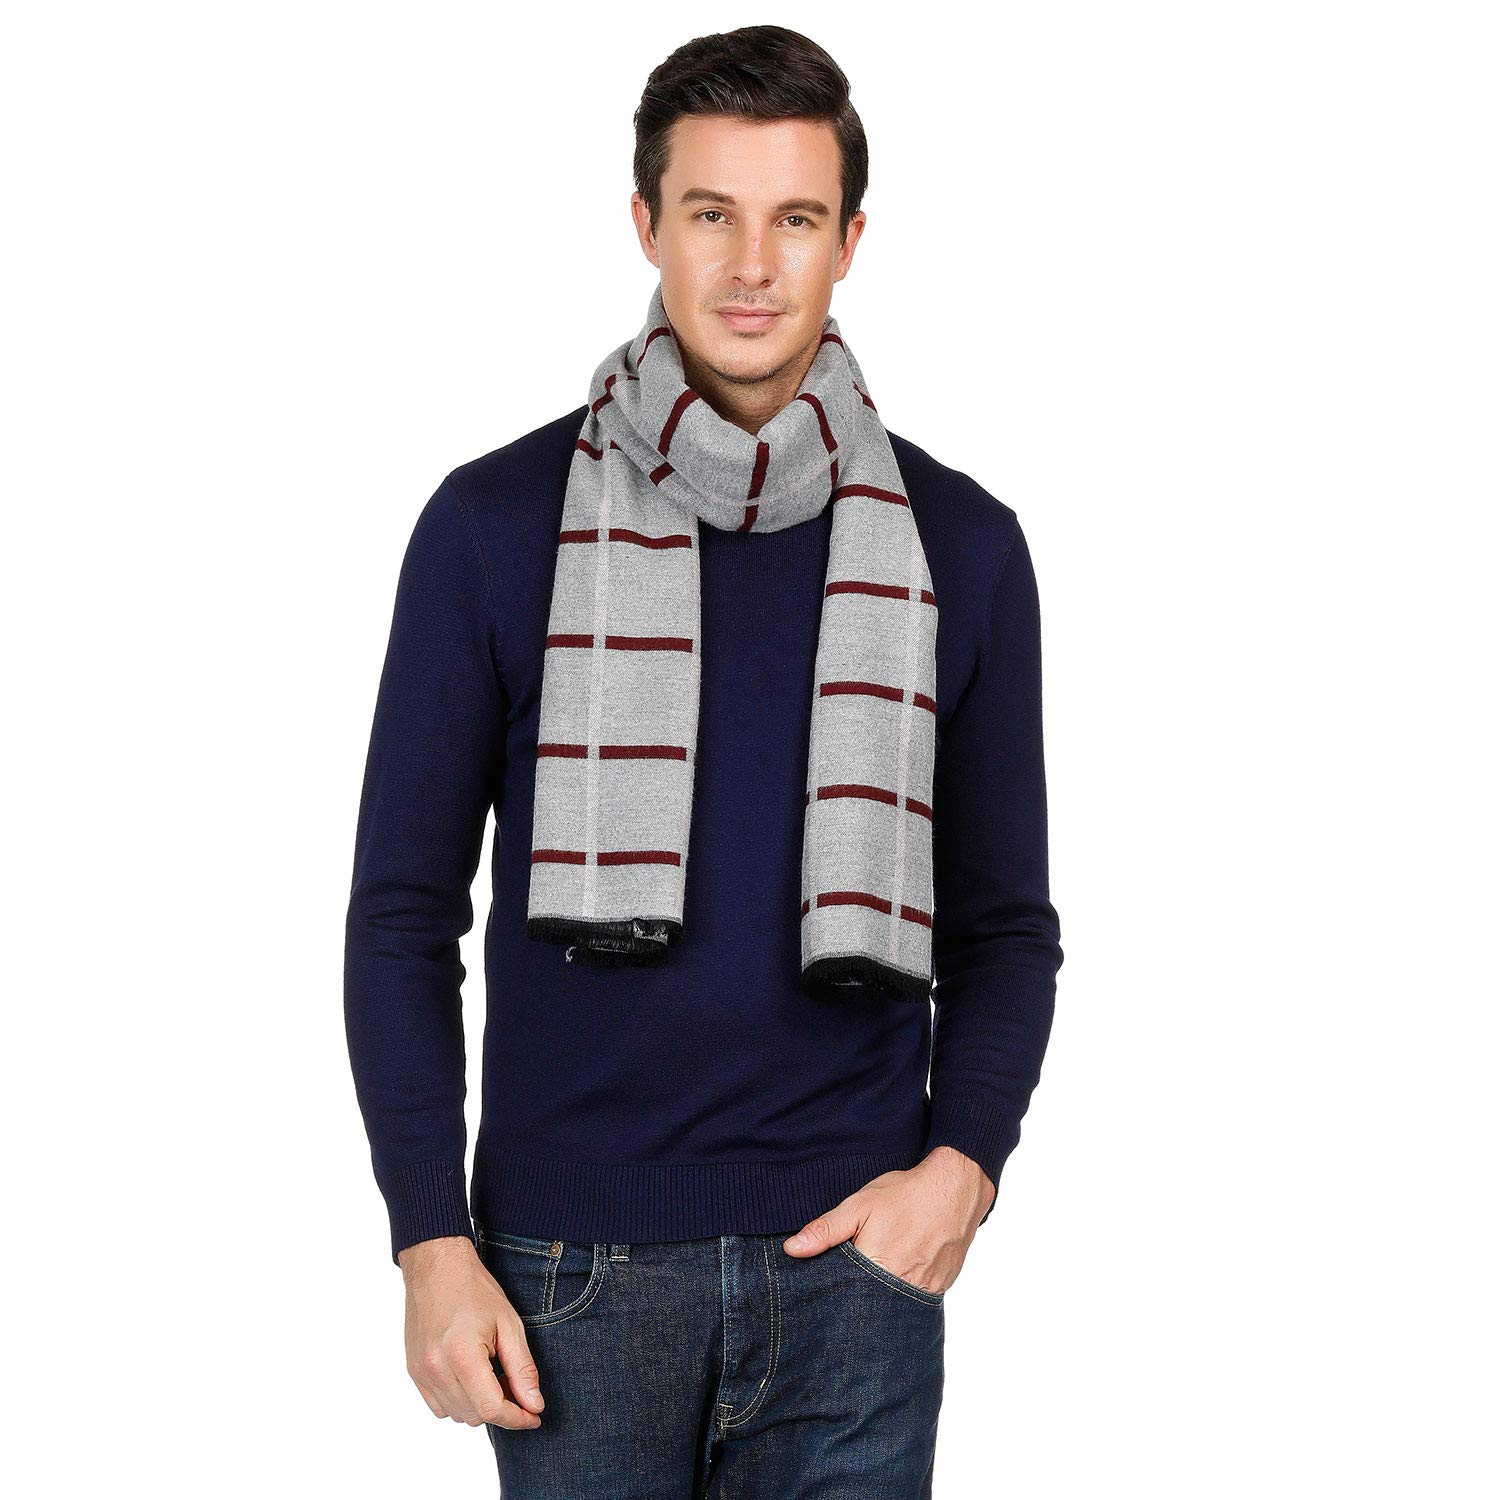 """Coloris Edition 100% Pure Cashmere Viscose Winter Scarf for Men Boys Warm 18""""x71"""" - Silky Soft Cashmere Scarf Gift"""